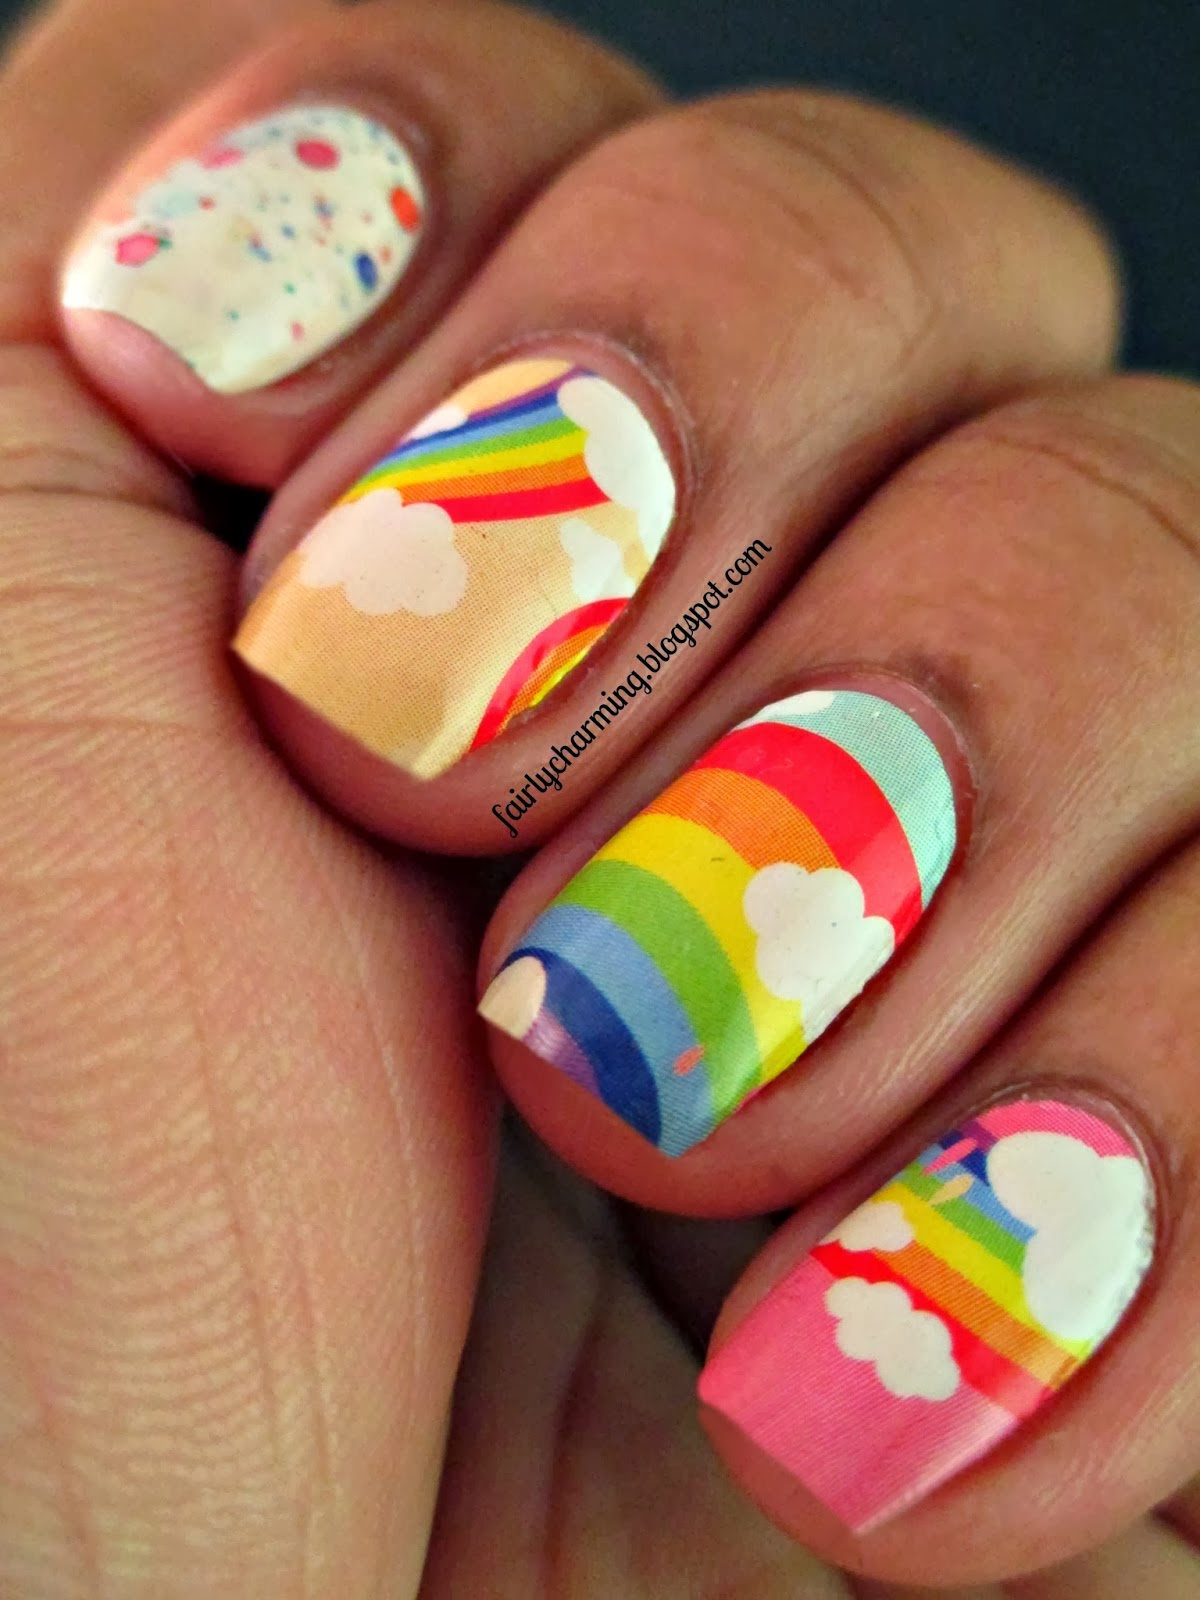 Born Pretty Store Blog: December Nail Art Designs Show